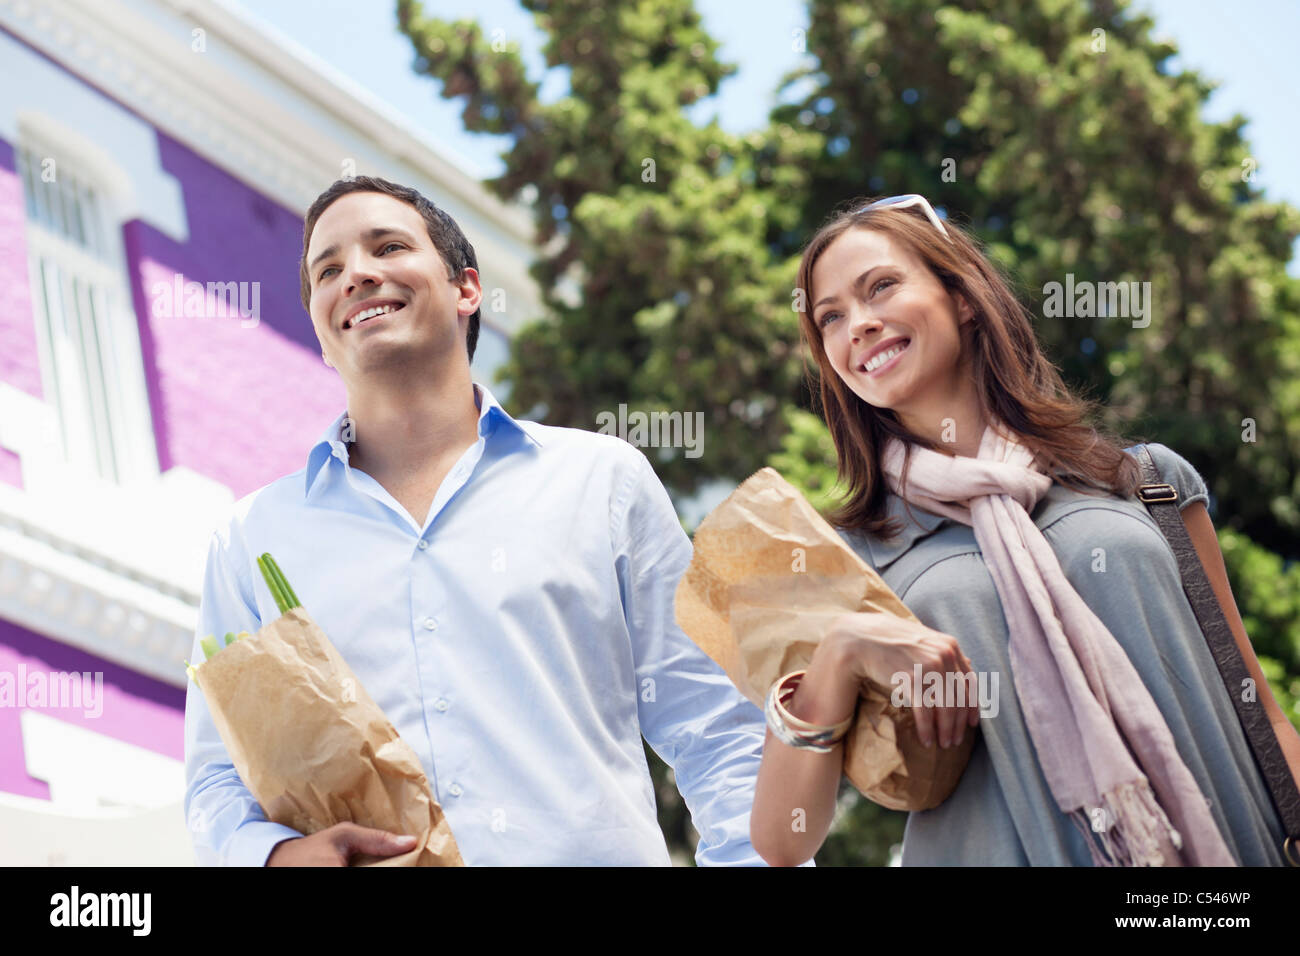 Smiling couple standing with paper bags full of vegetables - Stock Image